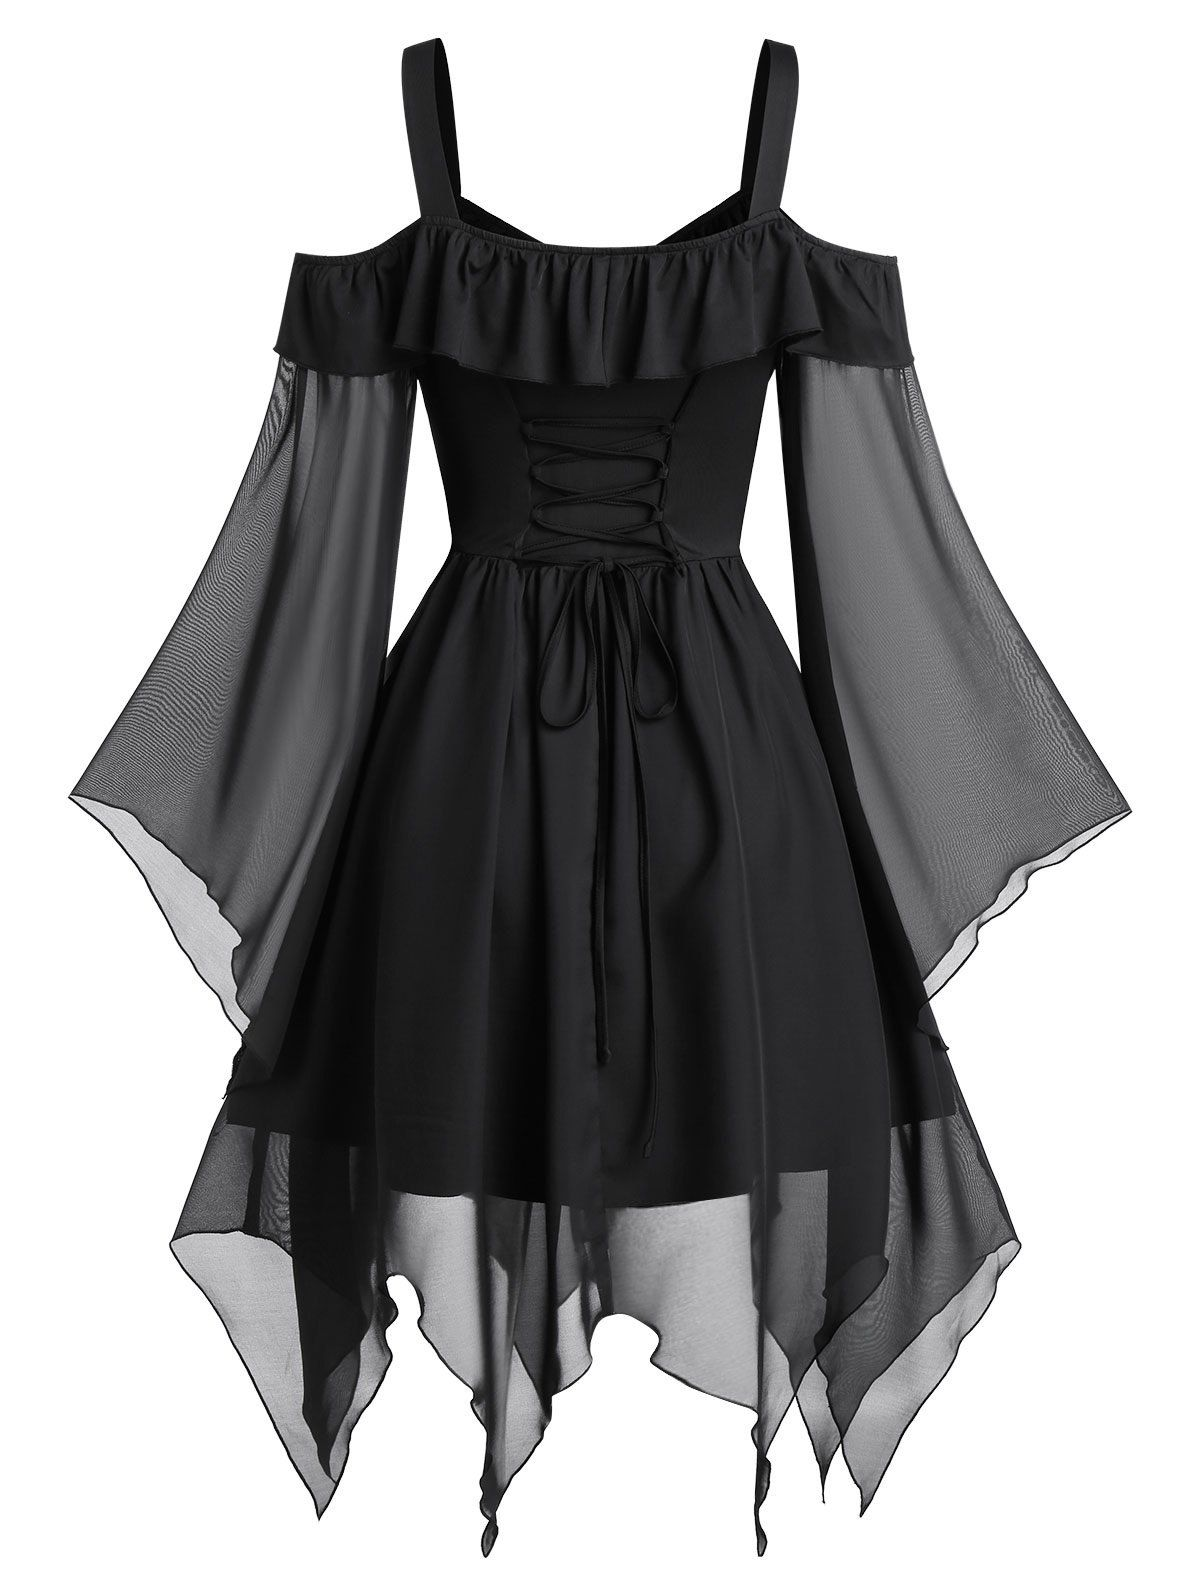 Dresslily Com Photo Gallery Butterfly Sleeve Cold Shoulder Lace Up Handkerchief Gothic Chiffon D In 2020 Teal Prom Dresses Black Gothic Dress Fashion Design Clothes